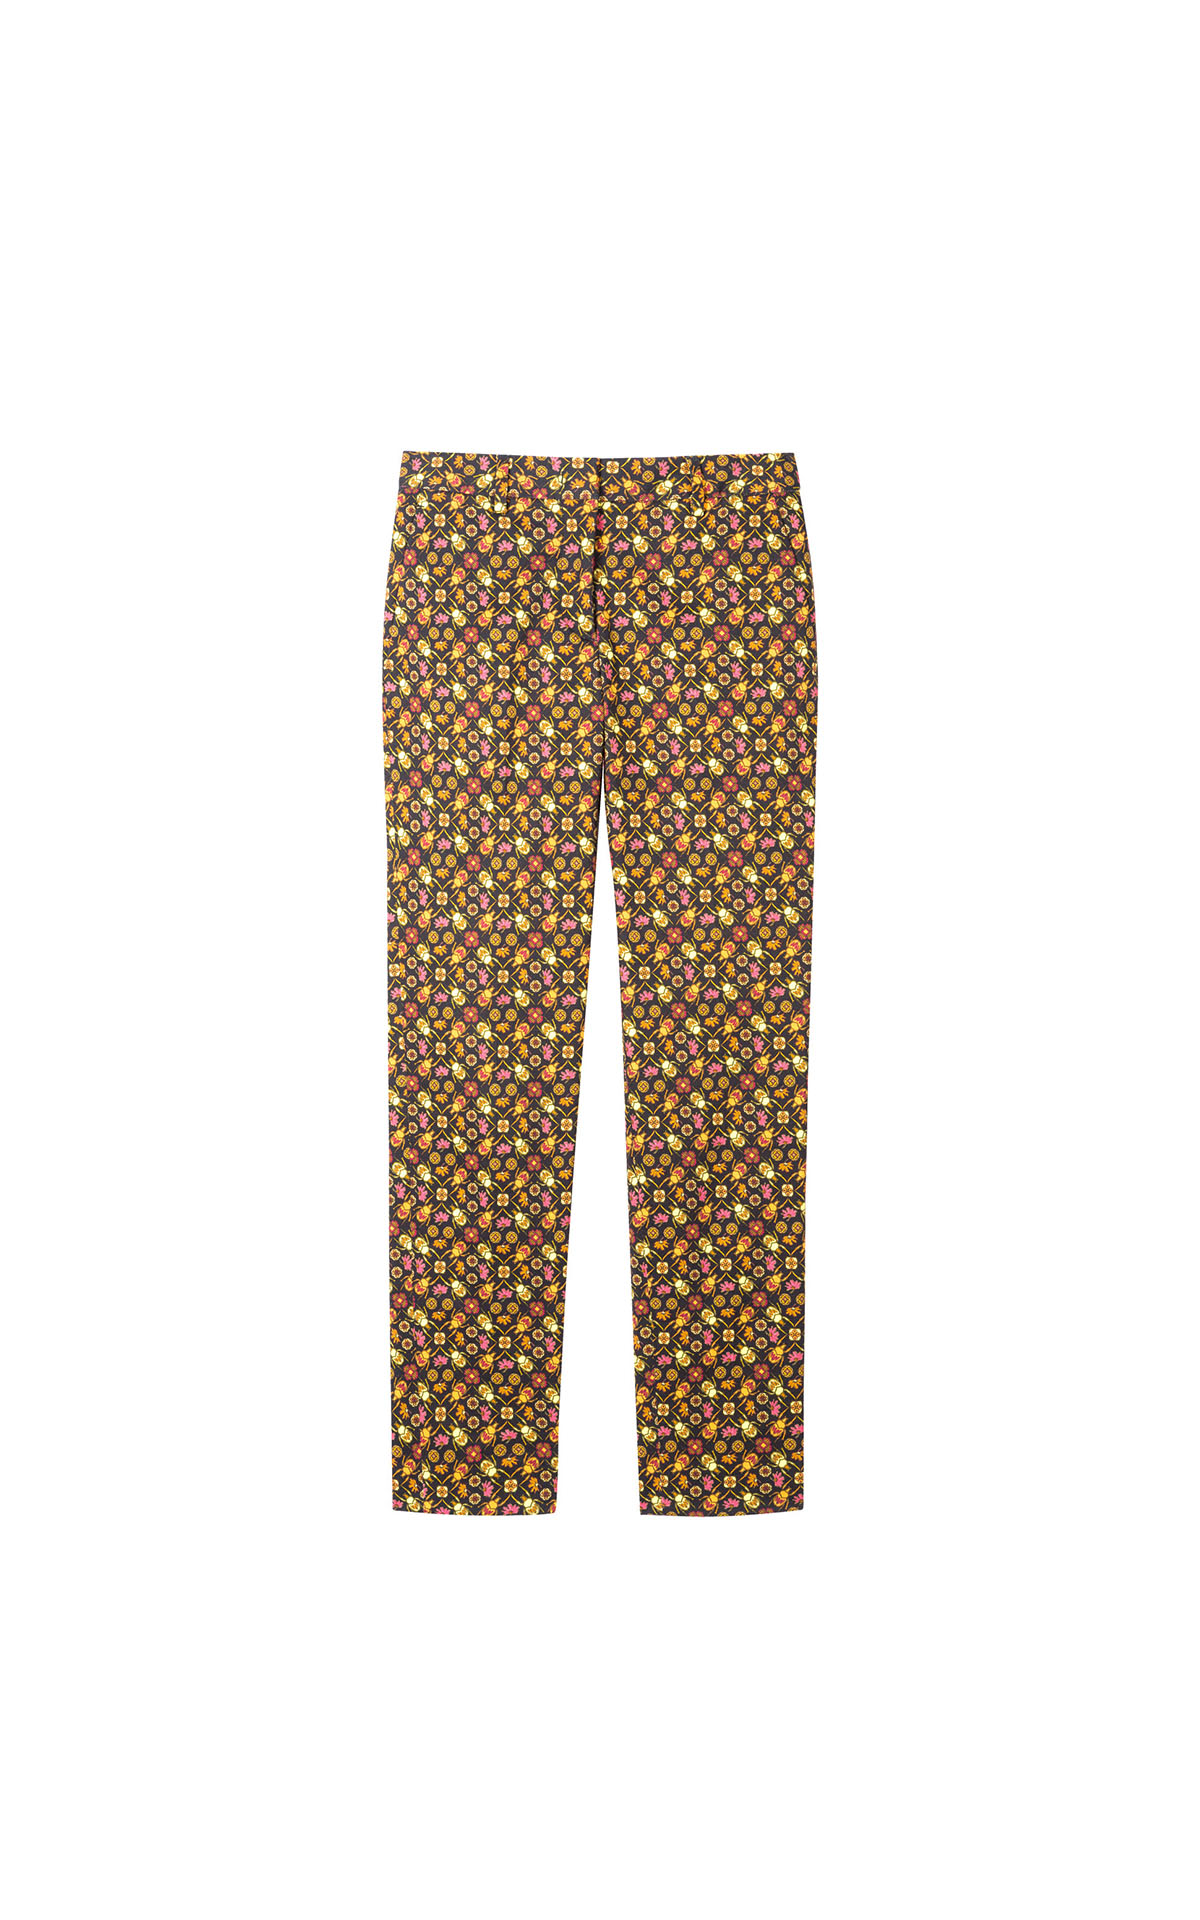 Paul Smith woman's black goliath beetle trousers at The Bicester Village Shopping Collection